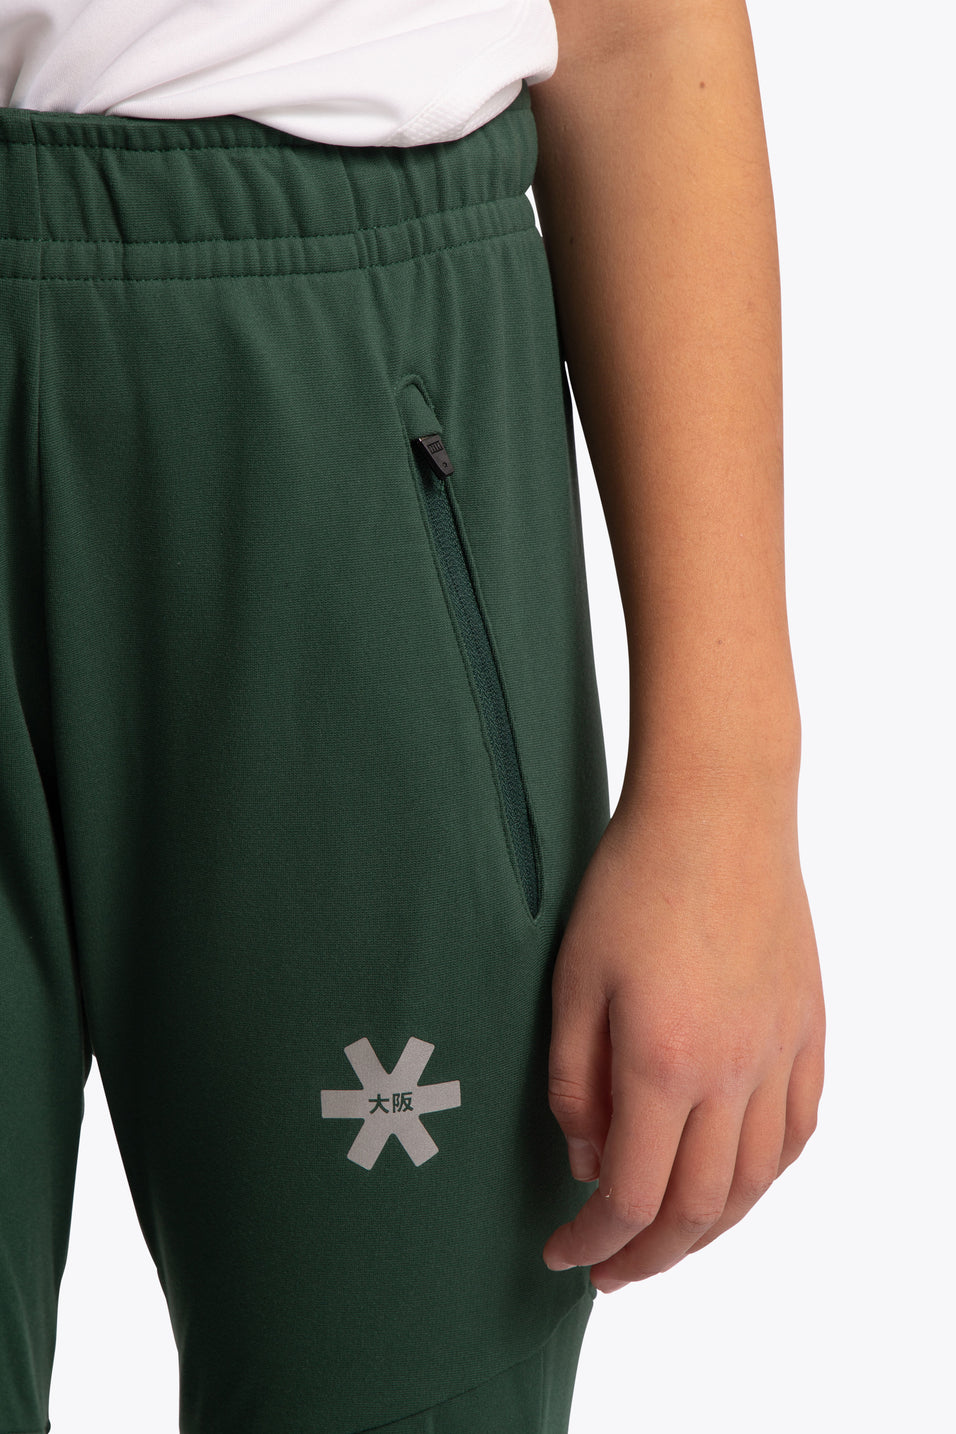 Deshi Track Pants - Dark Green